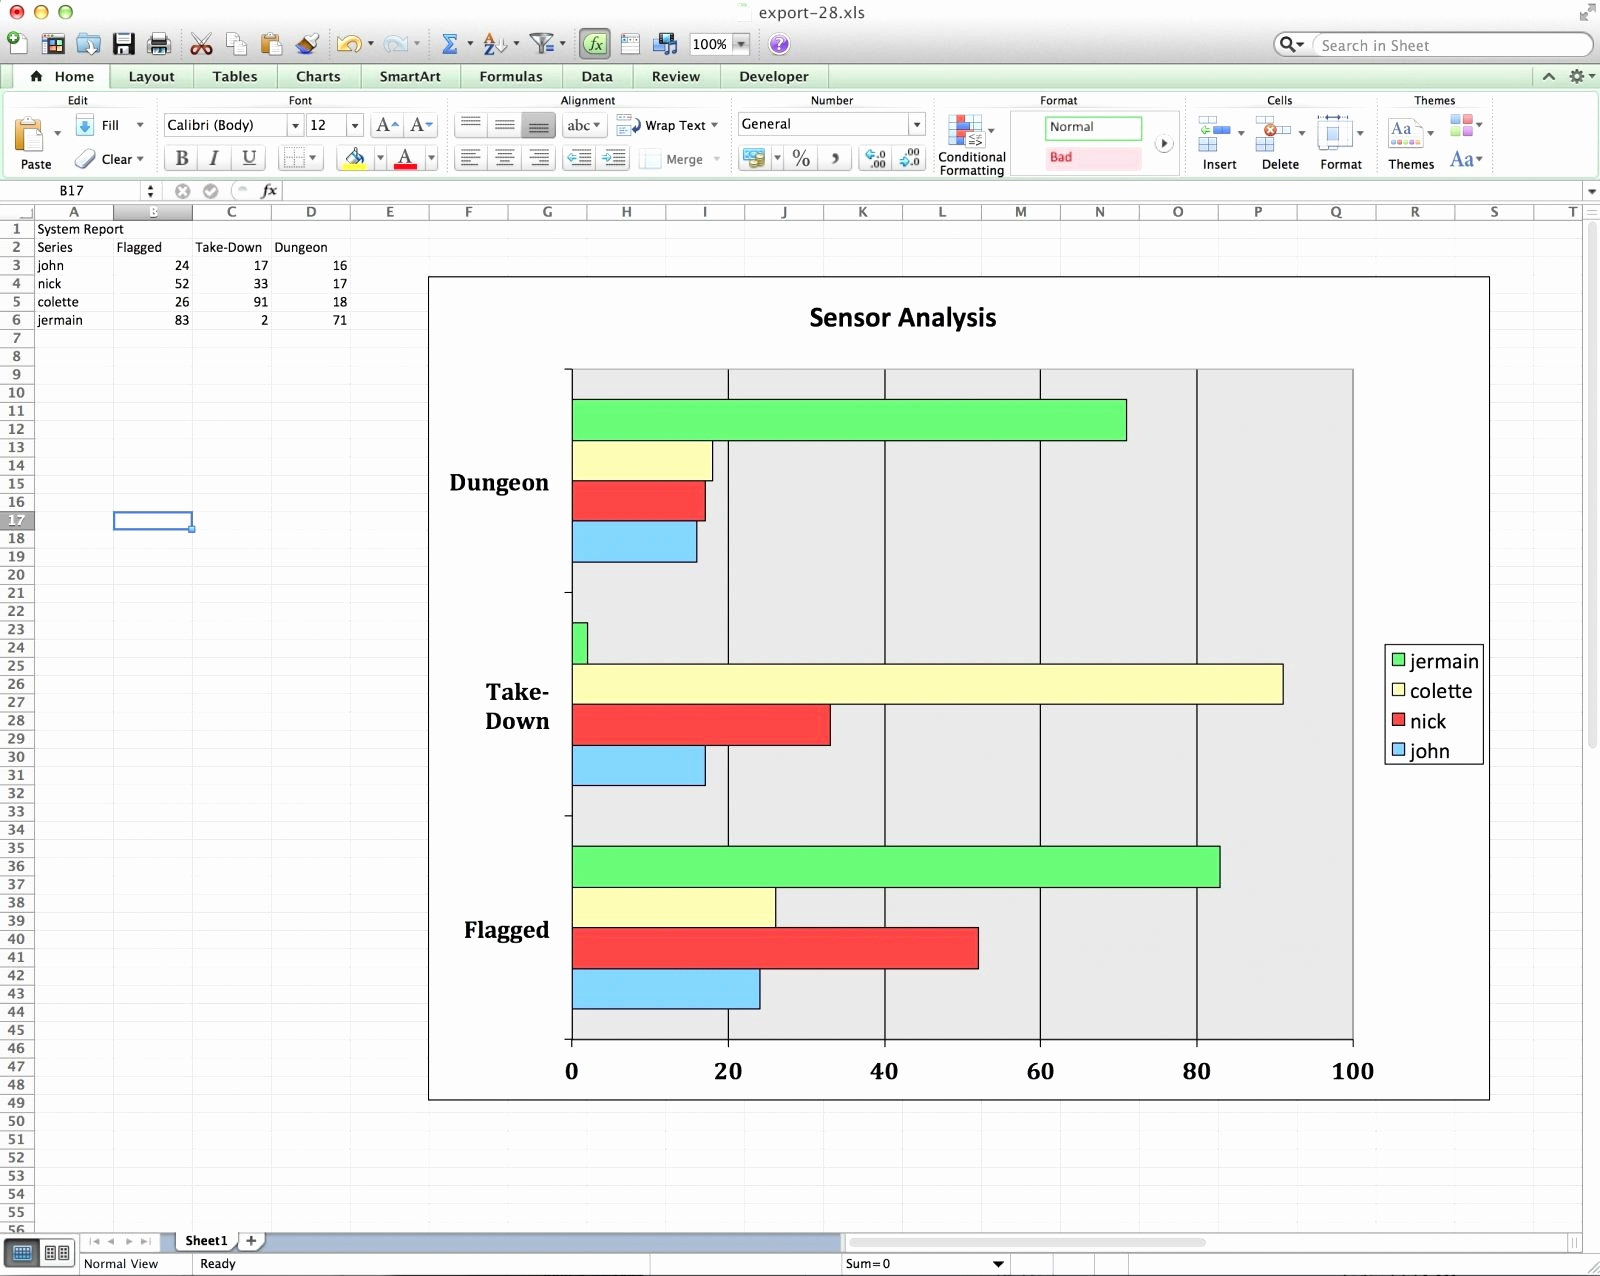 Phil Town Rule 1 Spreadsheet Within Rule 1 Investing Spreadsheet Spreadsheet App Excel Spreadsheet Phil